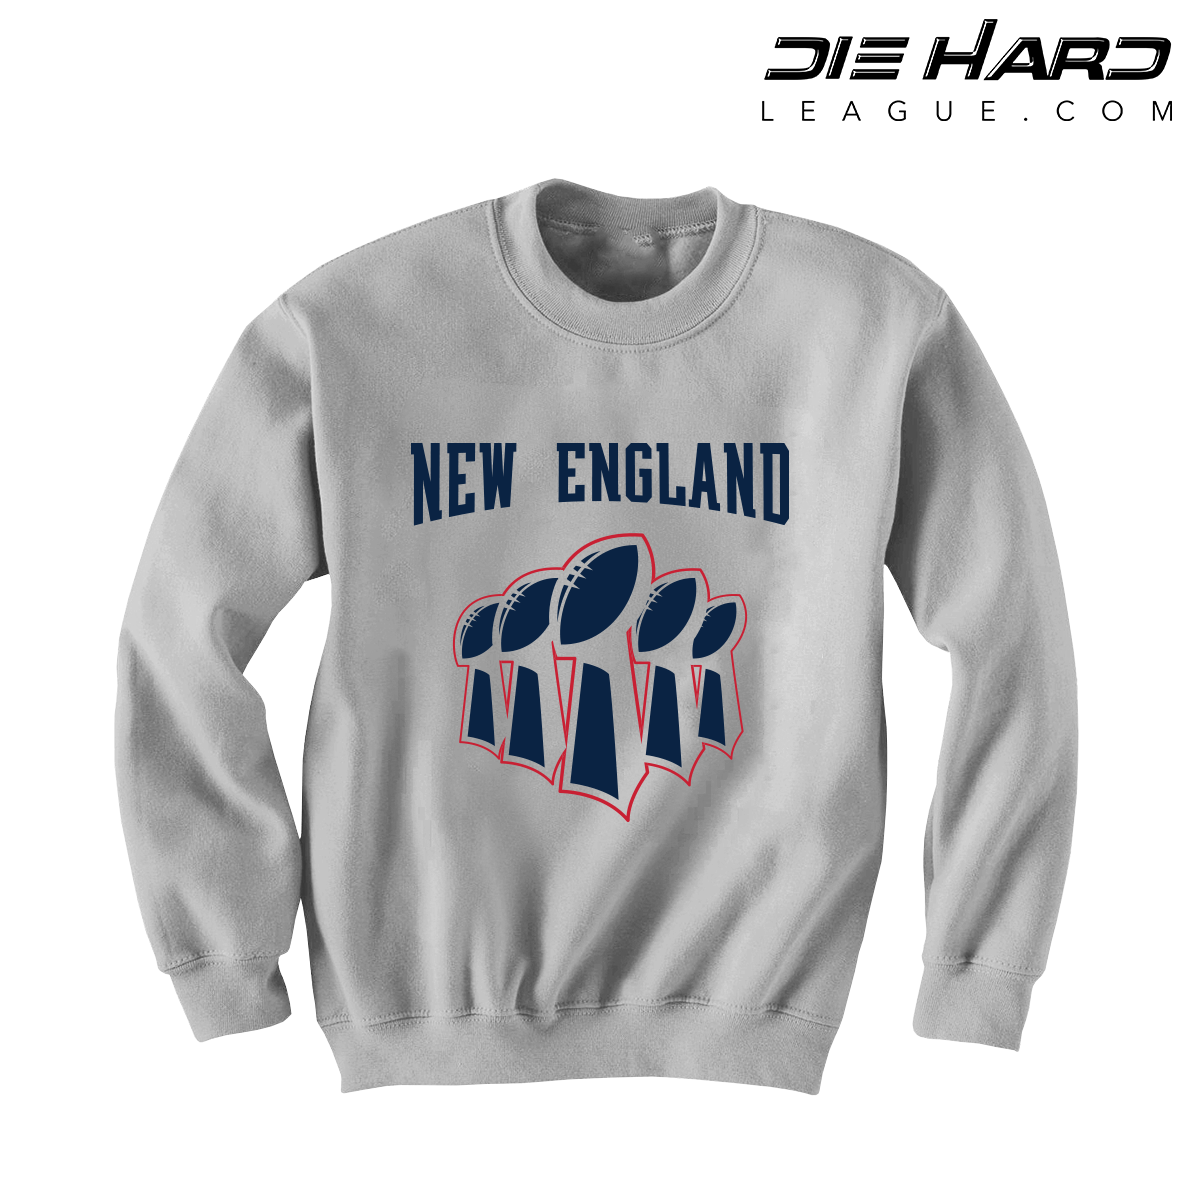 b5ac54a63 Shop. Home Nfl Shop Patriots Patriots Sweatshirts Patriot Super Bowl Wins – Patriots  Superbowl White Sweatshirt